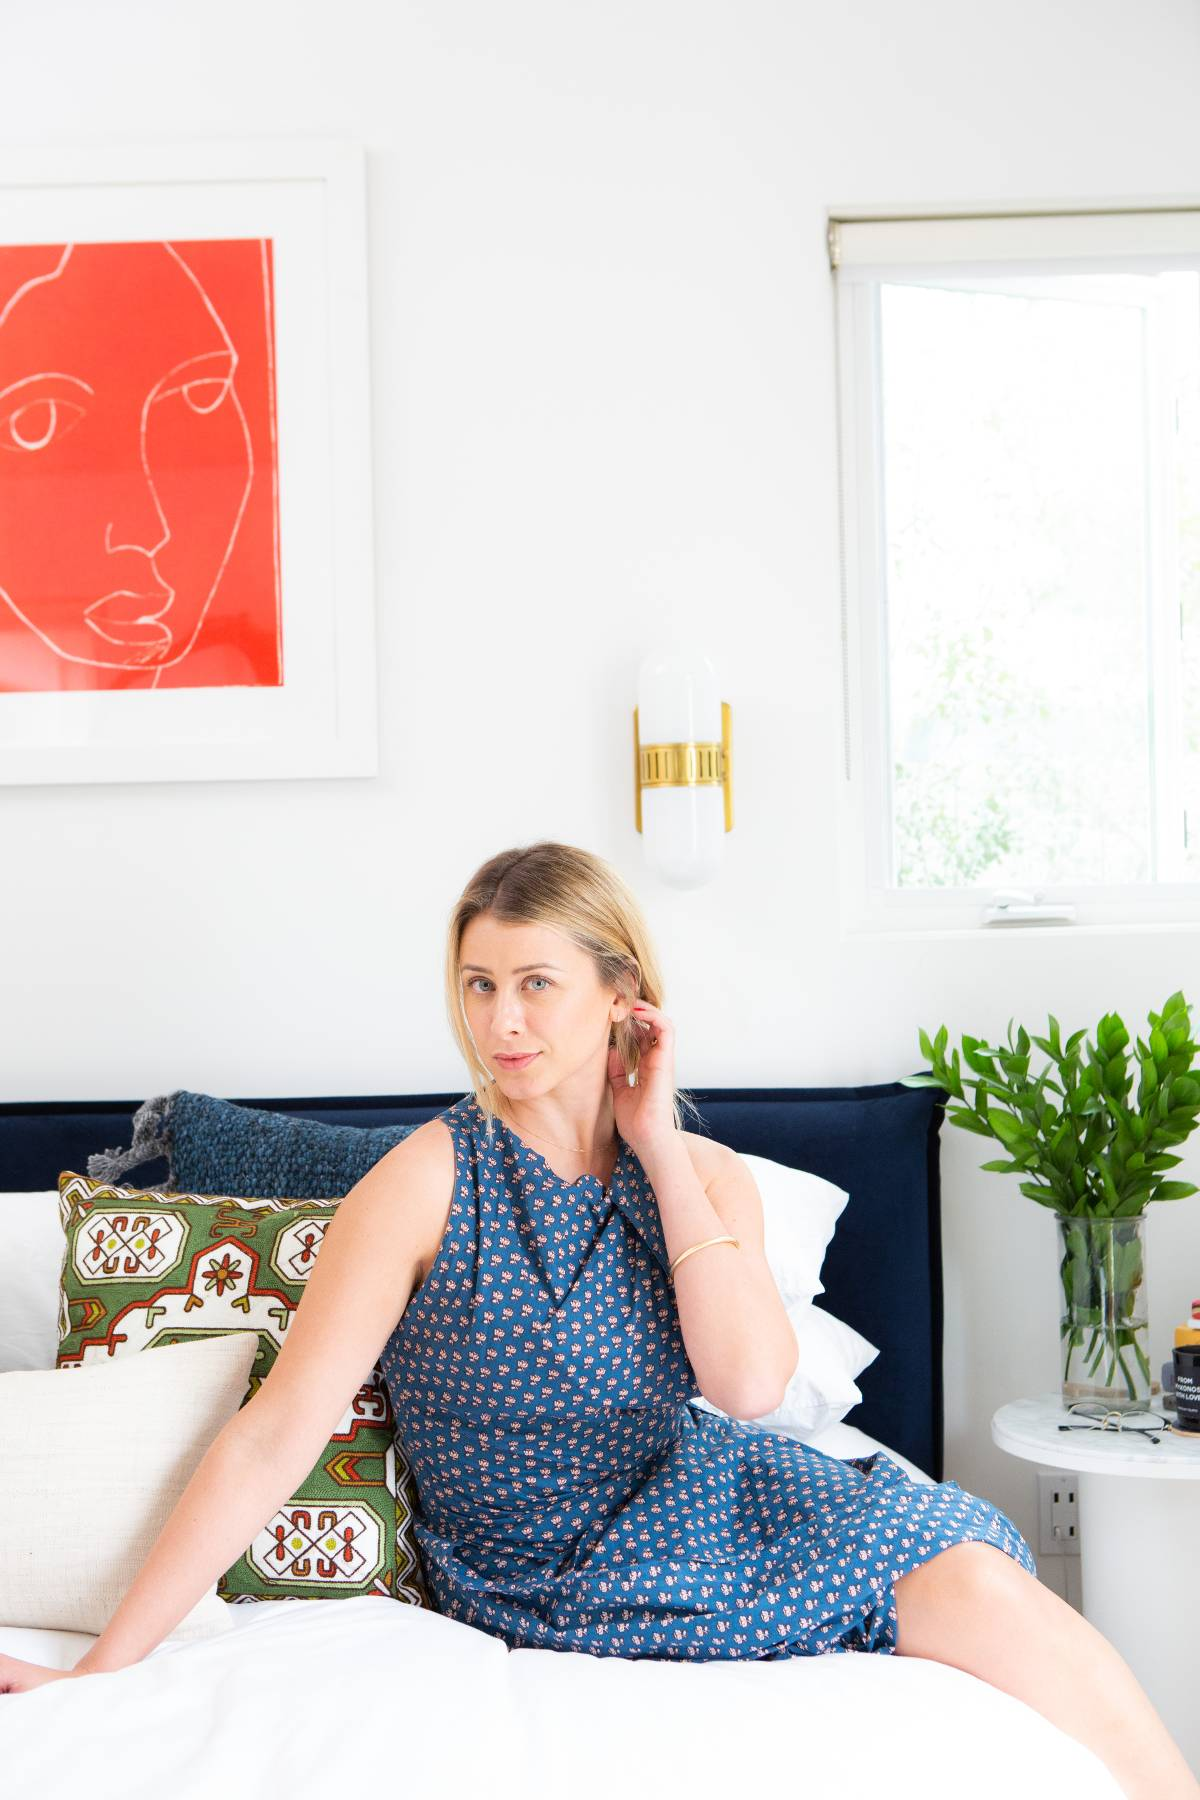 lo bosworth los angeles home 260537 1528989539027 image.1200x0c - A Casa da Lo Bosworth em LA